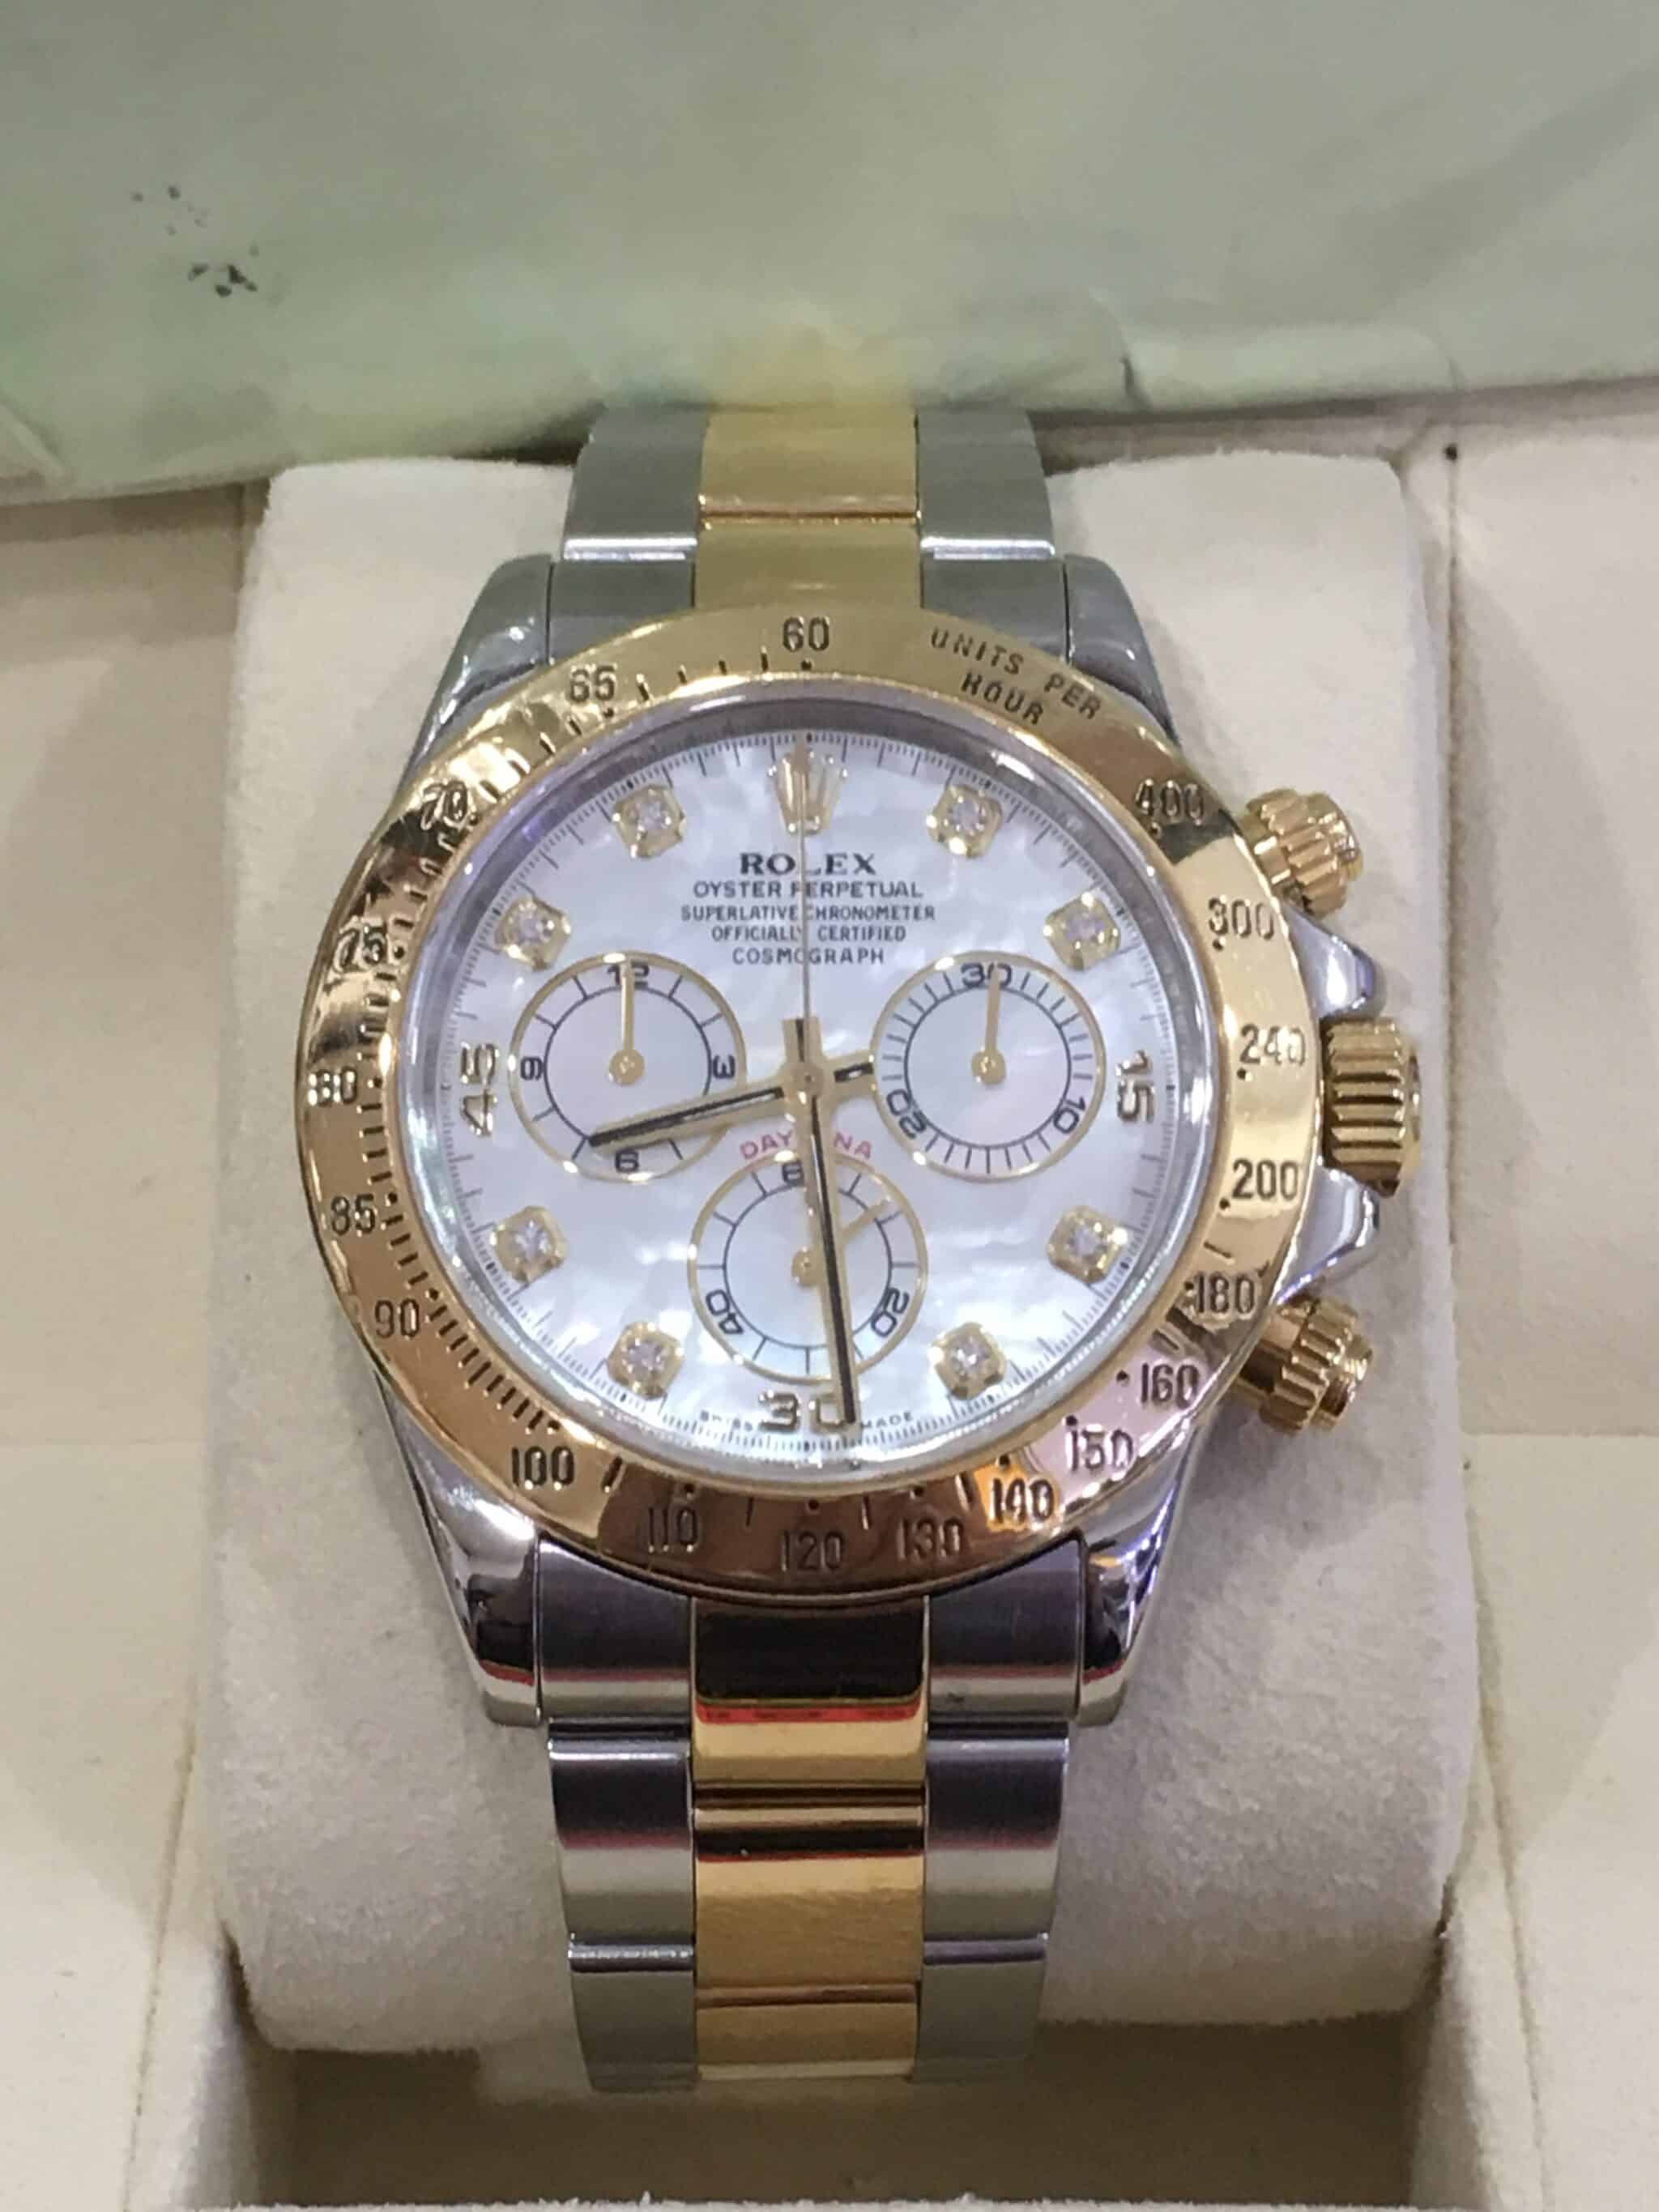 used owned second watches steel stainless unworn co watchcollectors watch pre diagono chronograph bvlgari preowned collectors hand uk